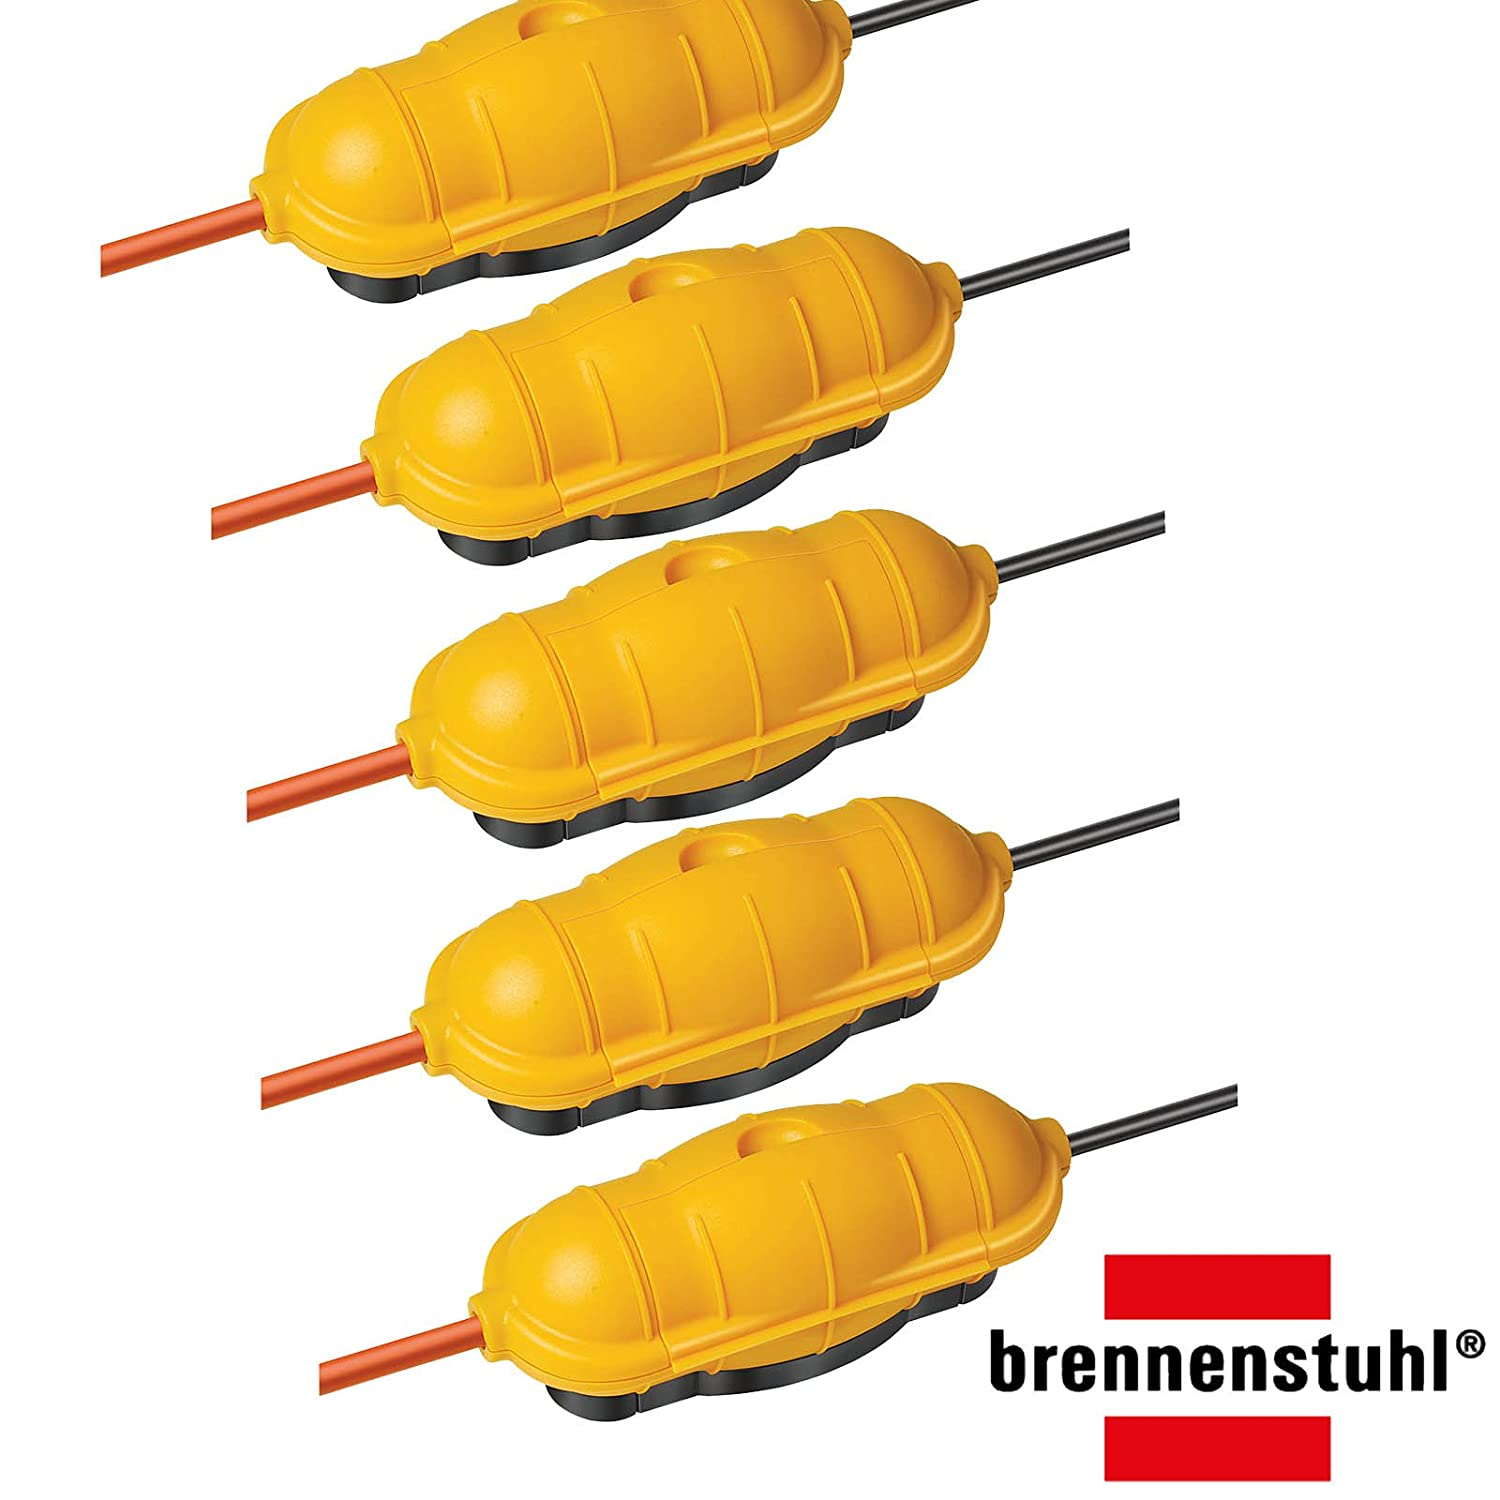 3er Pack Brennenstuhl Safe-Box Schutzkapsel fü r Kabel BIG IP44 outdoor gelb, 1160440 (3, Safebox BIG)